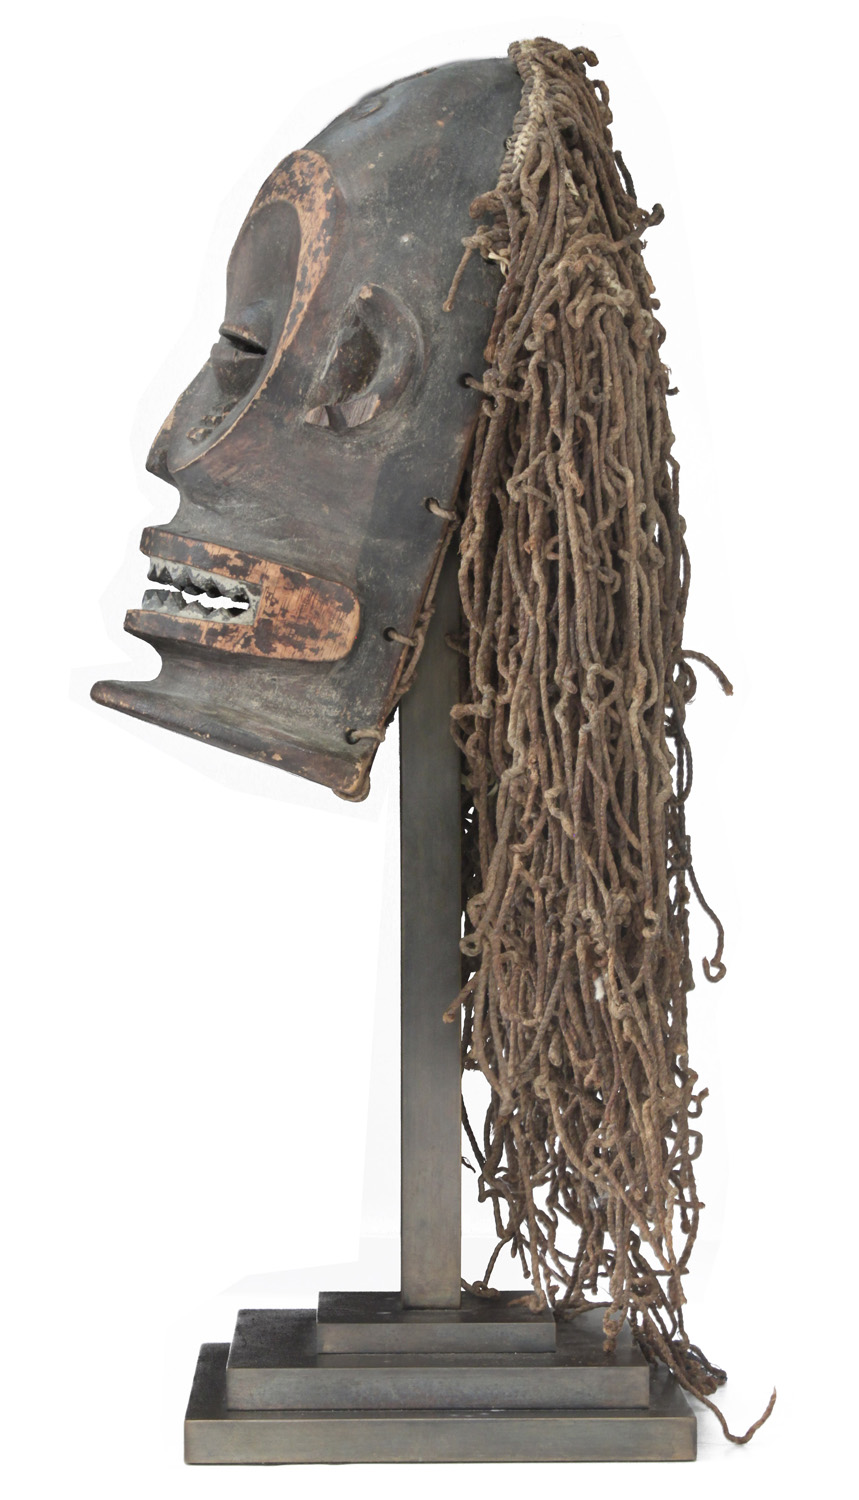 Springer 38 African mask Ekoi sculpture96 detail2 hires.jpg